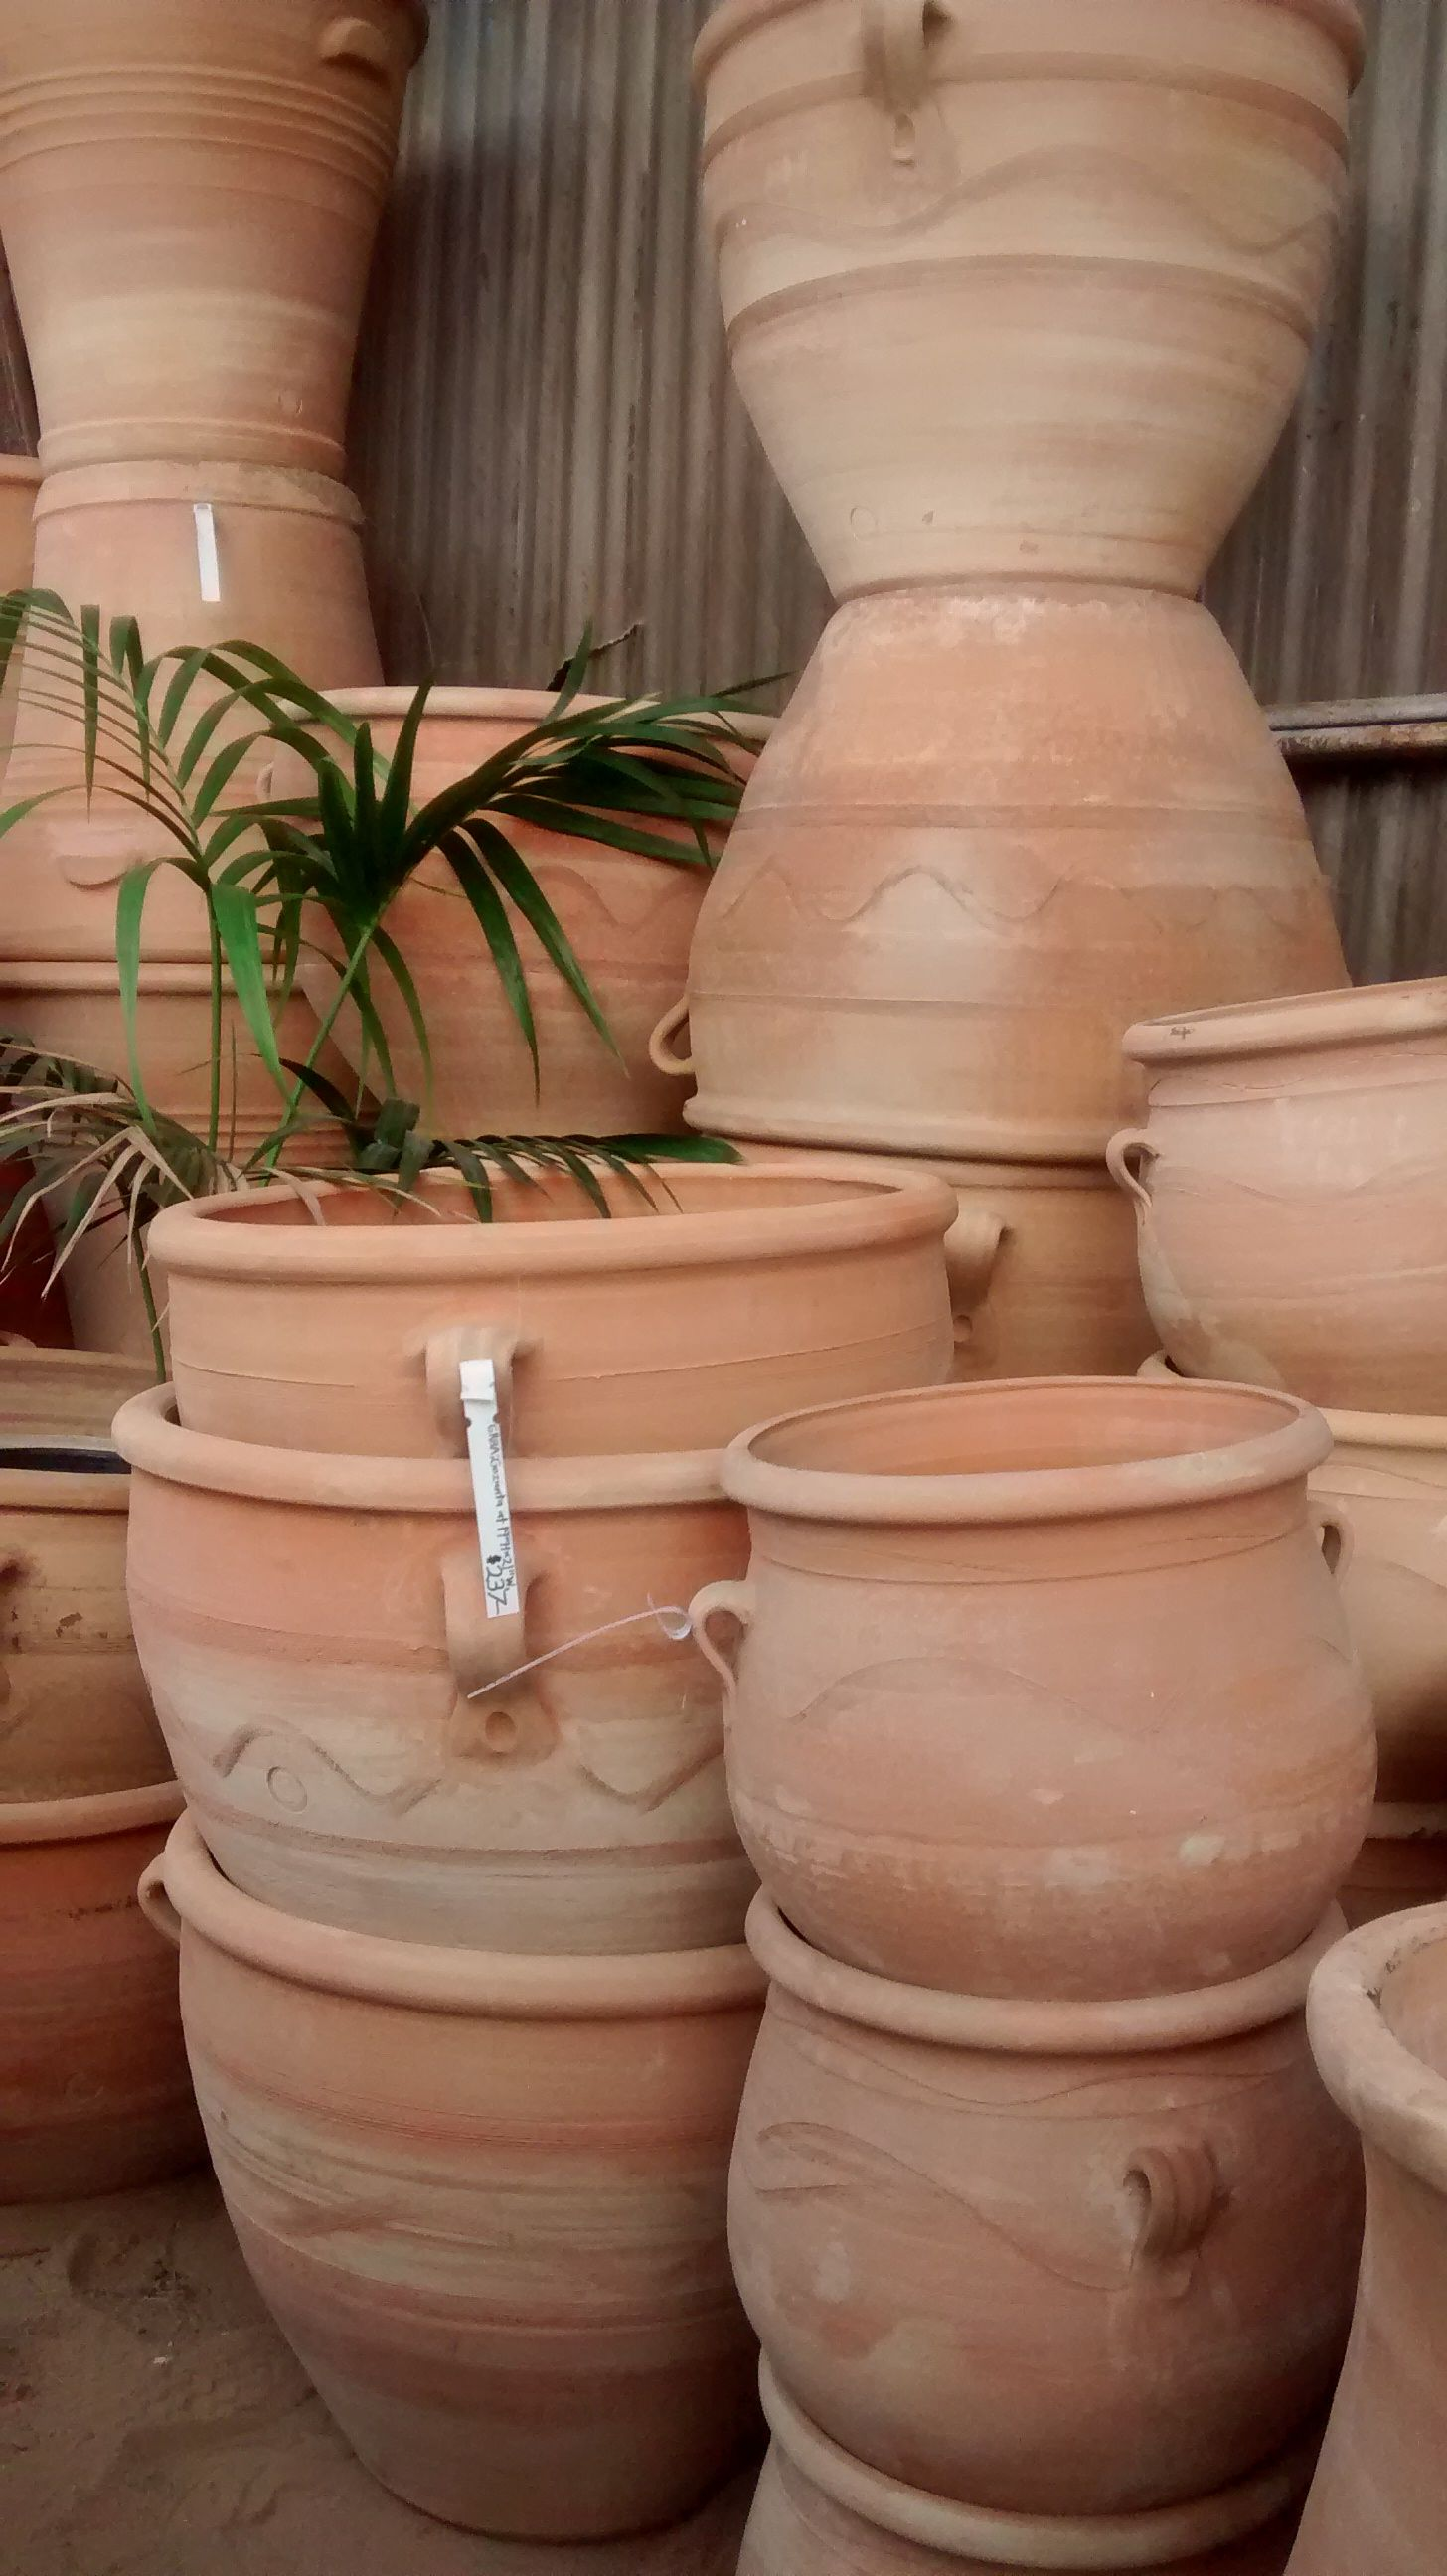 We Love Adding A Mediterranean Touch To Our Garden Design With Our Hand Thrown Greek Terracotta Terracotta Antique Terra Cotta Pots Terracotta Pots